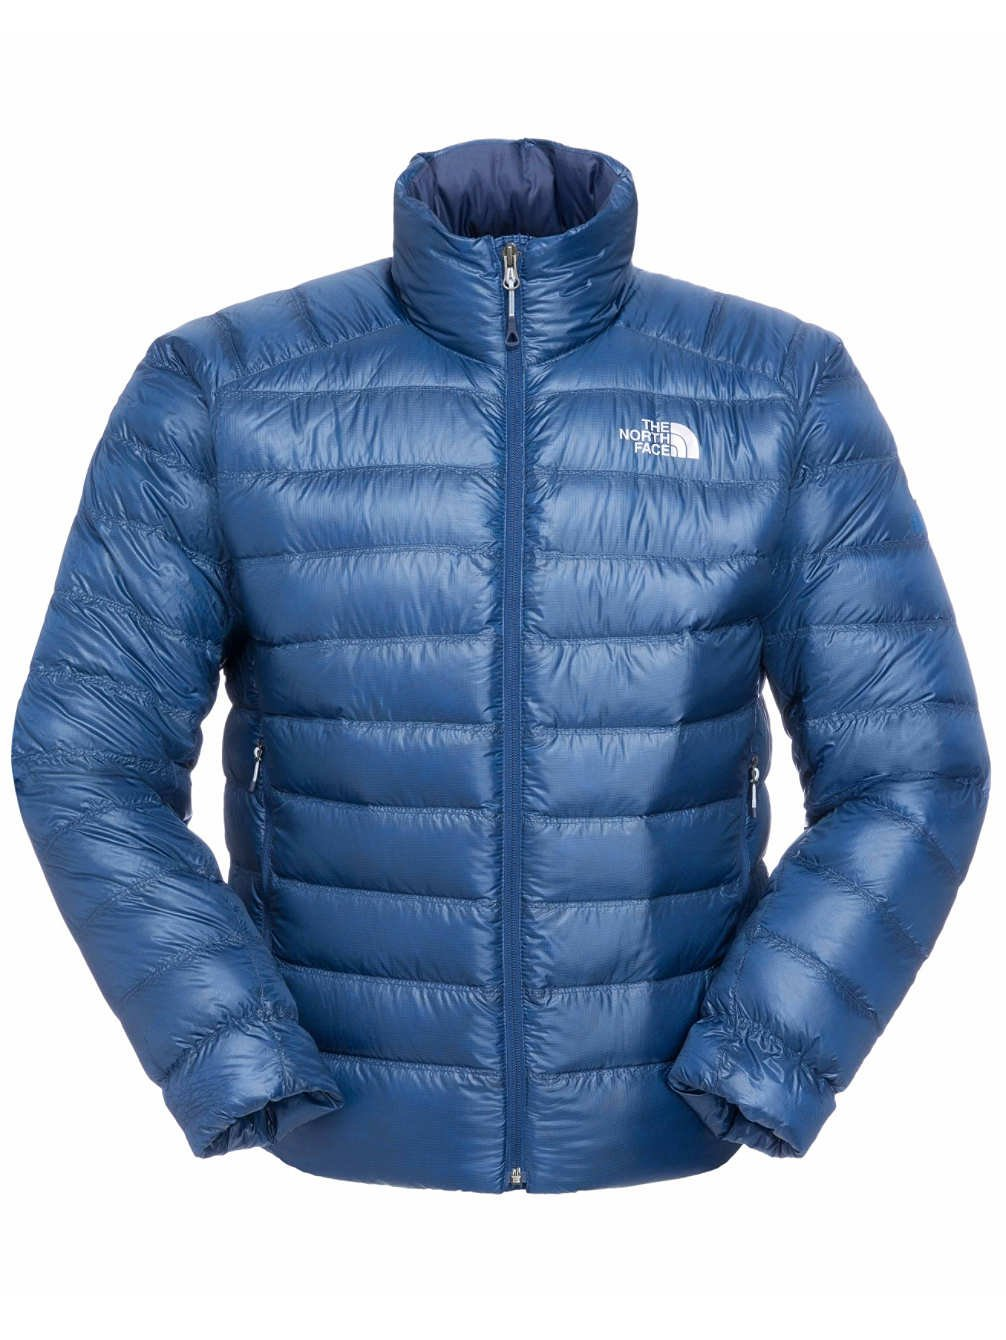 640c6dae5cf2 ... coupon code for snowwear jacket men the north face super diez jacket  amazon sports outdoors 05f0a ...